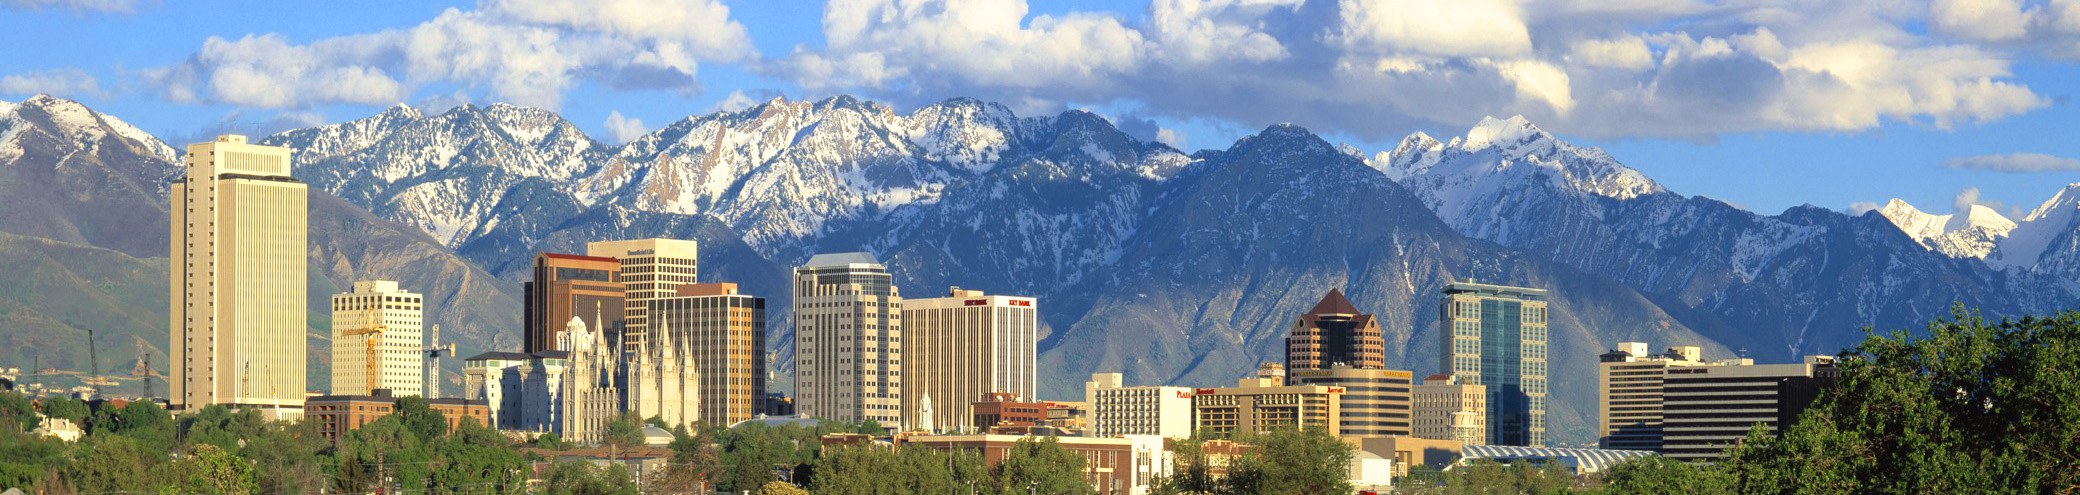 SLC Skyline by Douglas Publisher